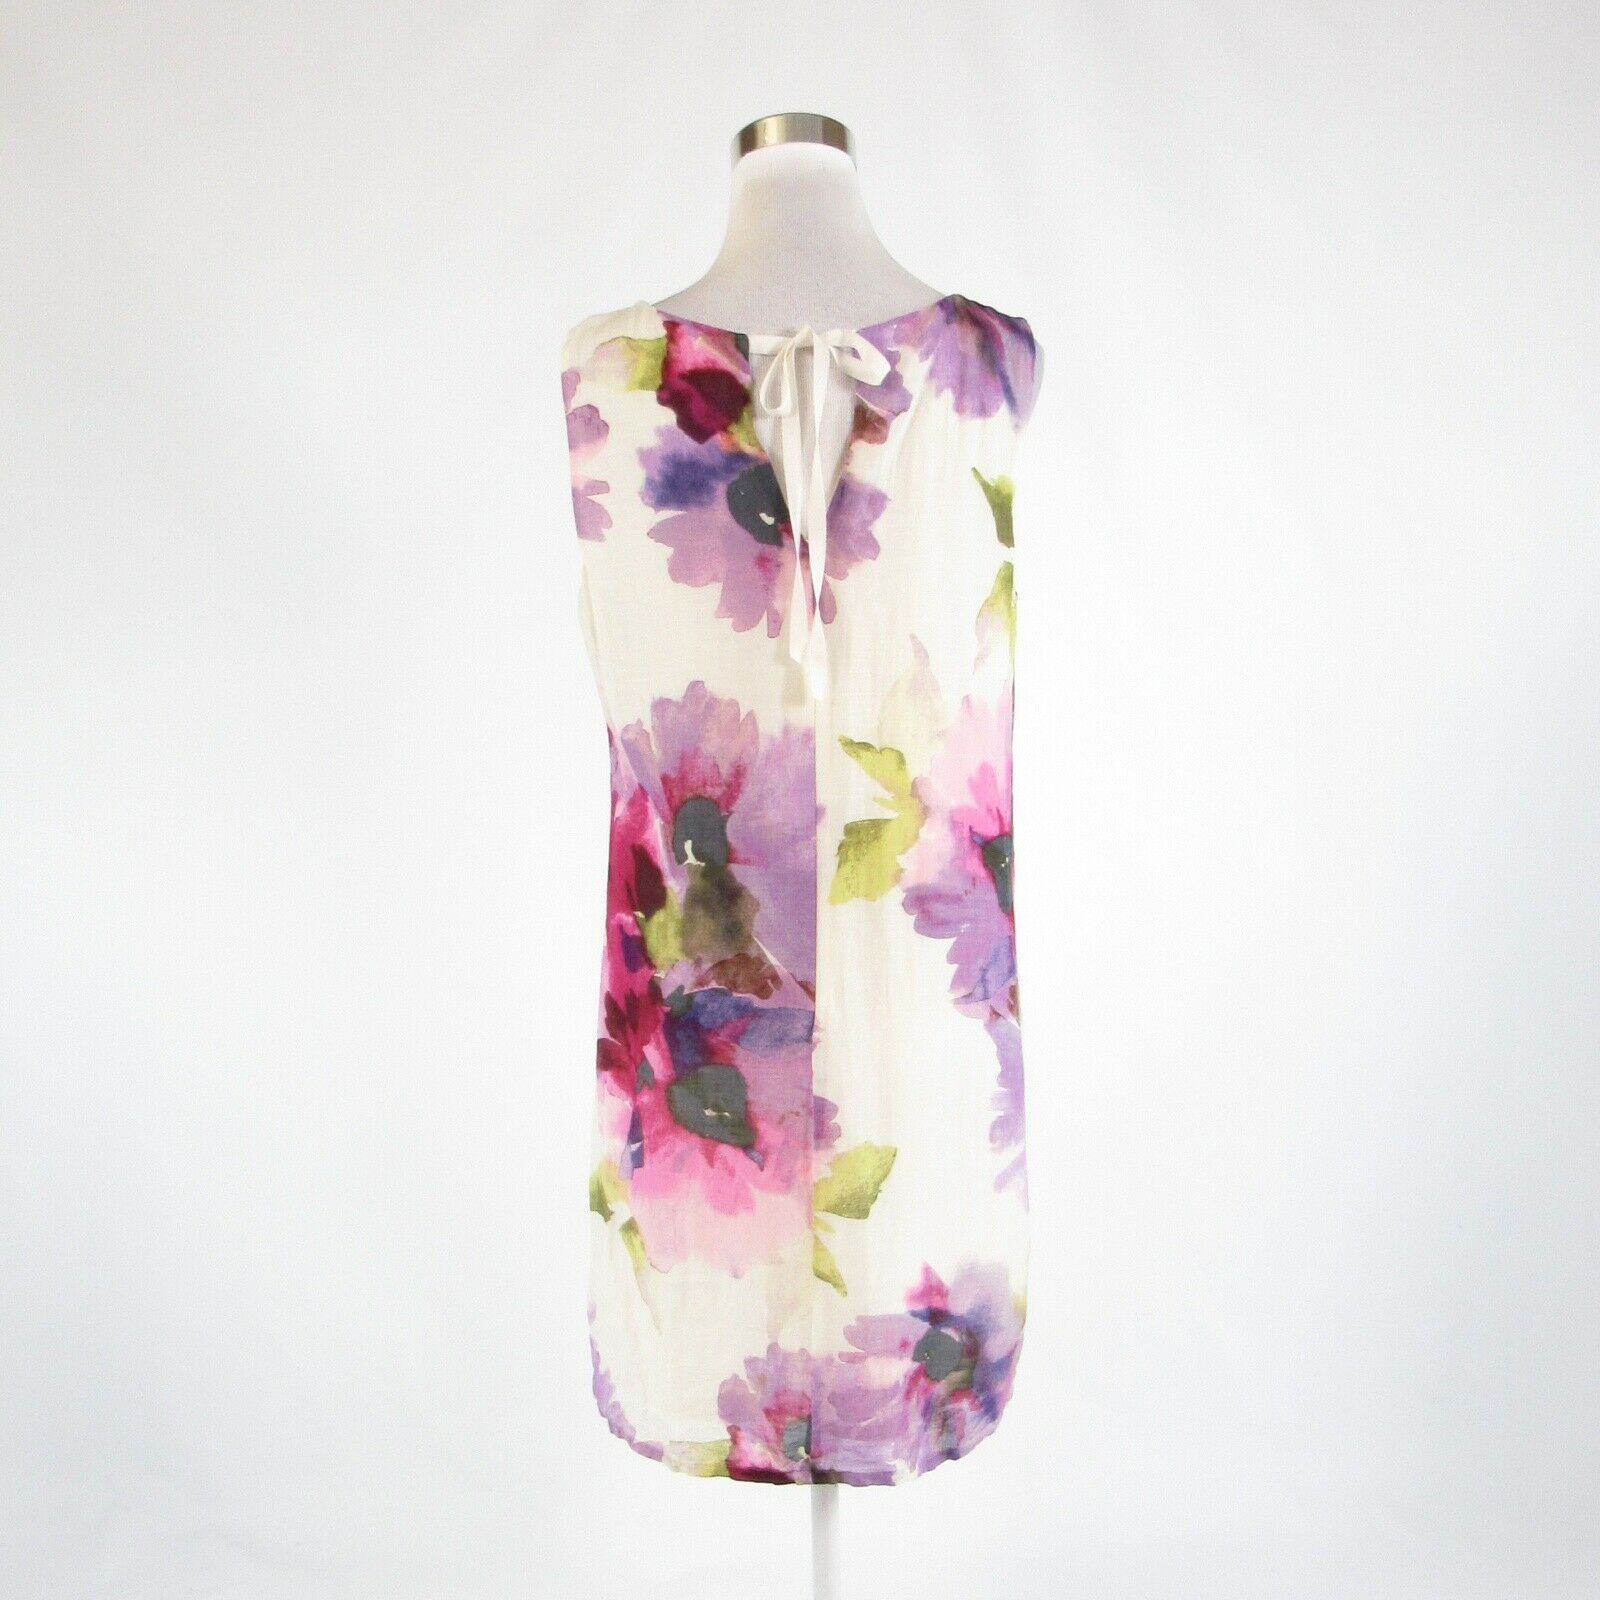 White purple floral print ANN TAYLOR LOFT sleeveless shift dress 10 image 7